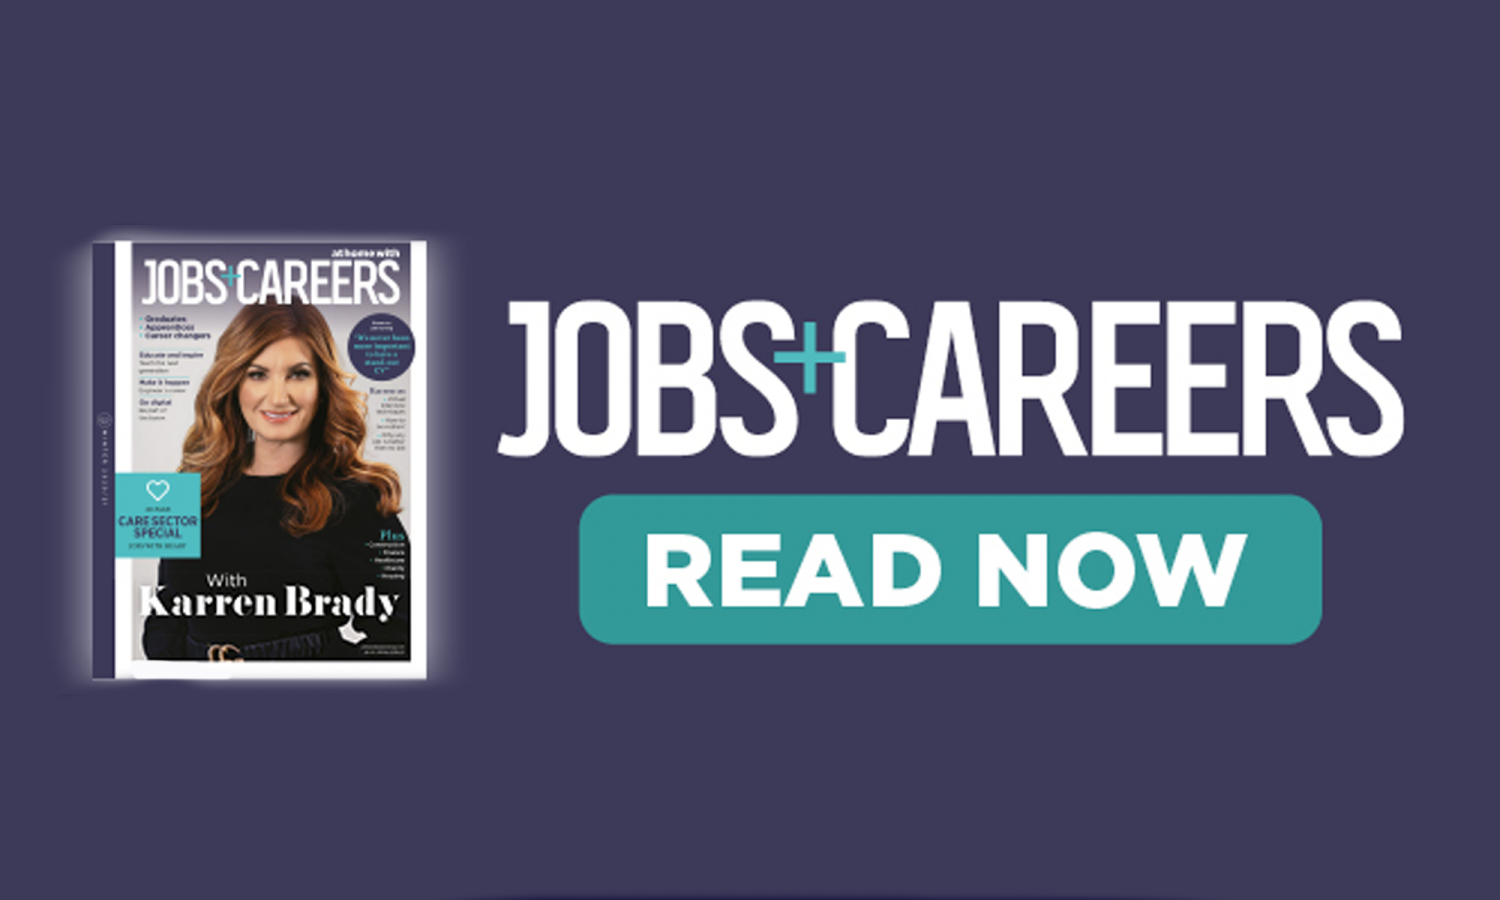 Jobs and careers mag cover